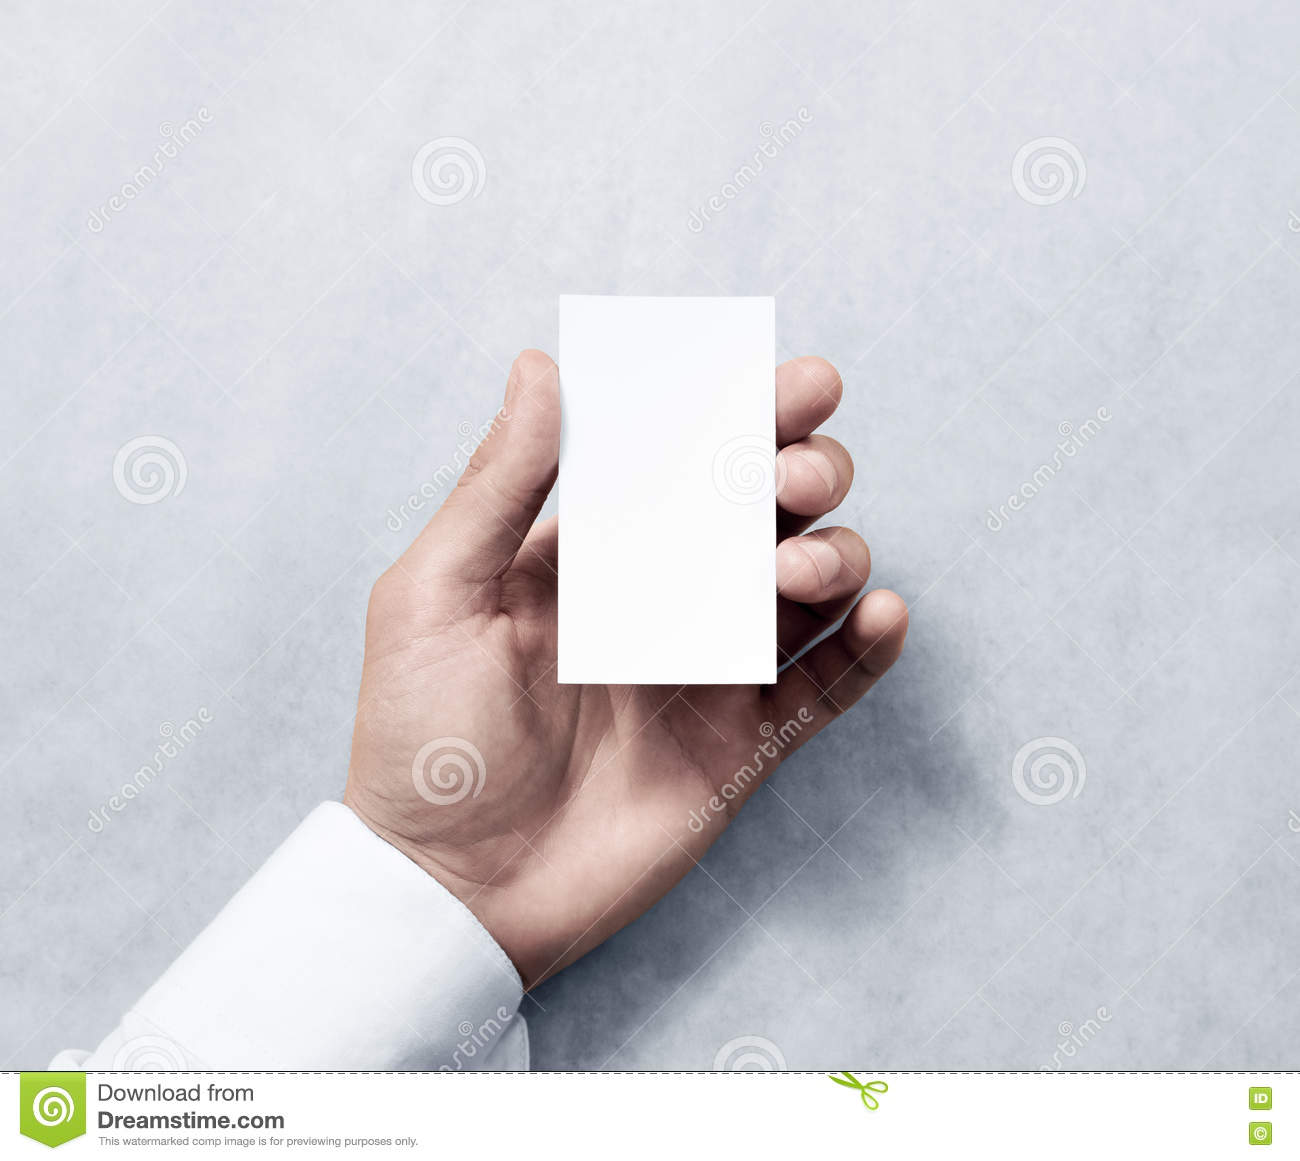 Hand holding blank vertical white business card design mockup stock hand holding blank vertical white business card design mockup royalty free stock photo reheart Images